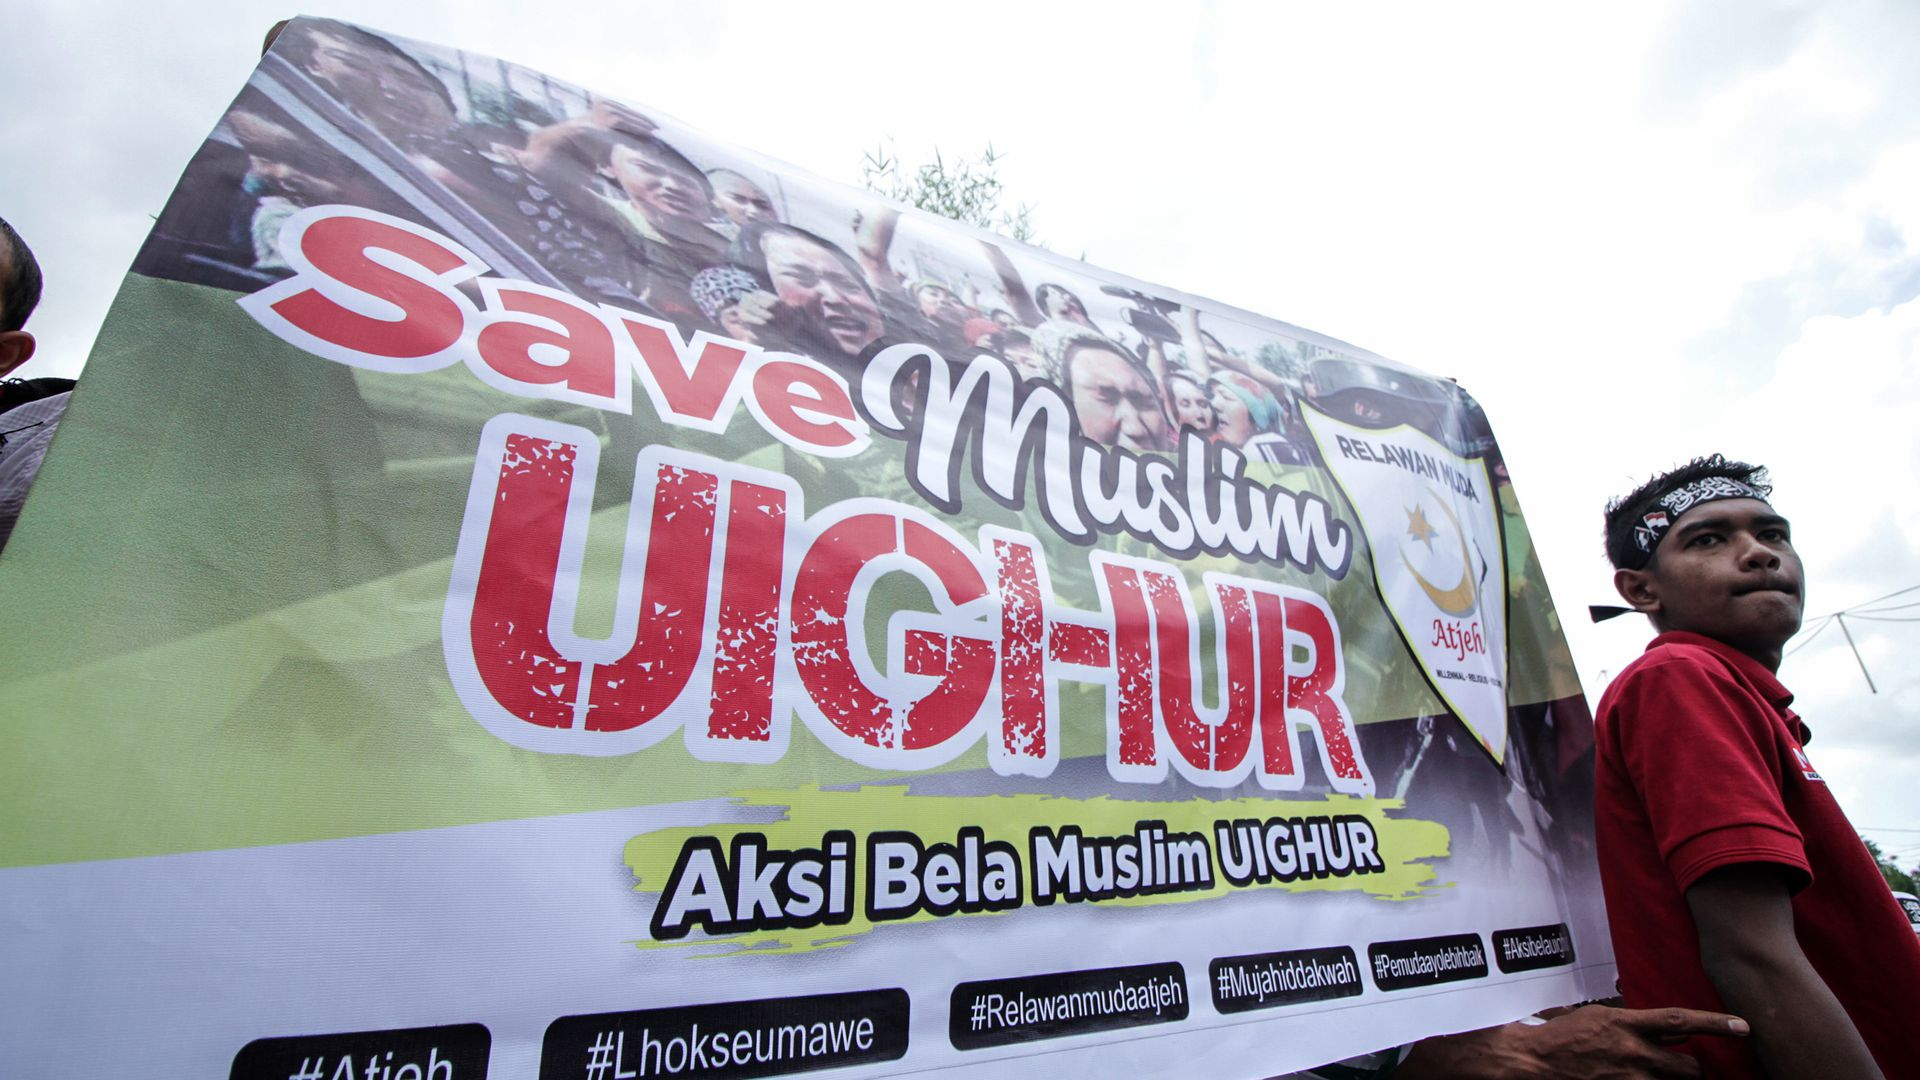 Save Muslim Uighur sign